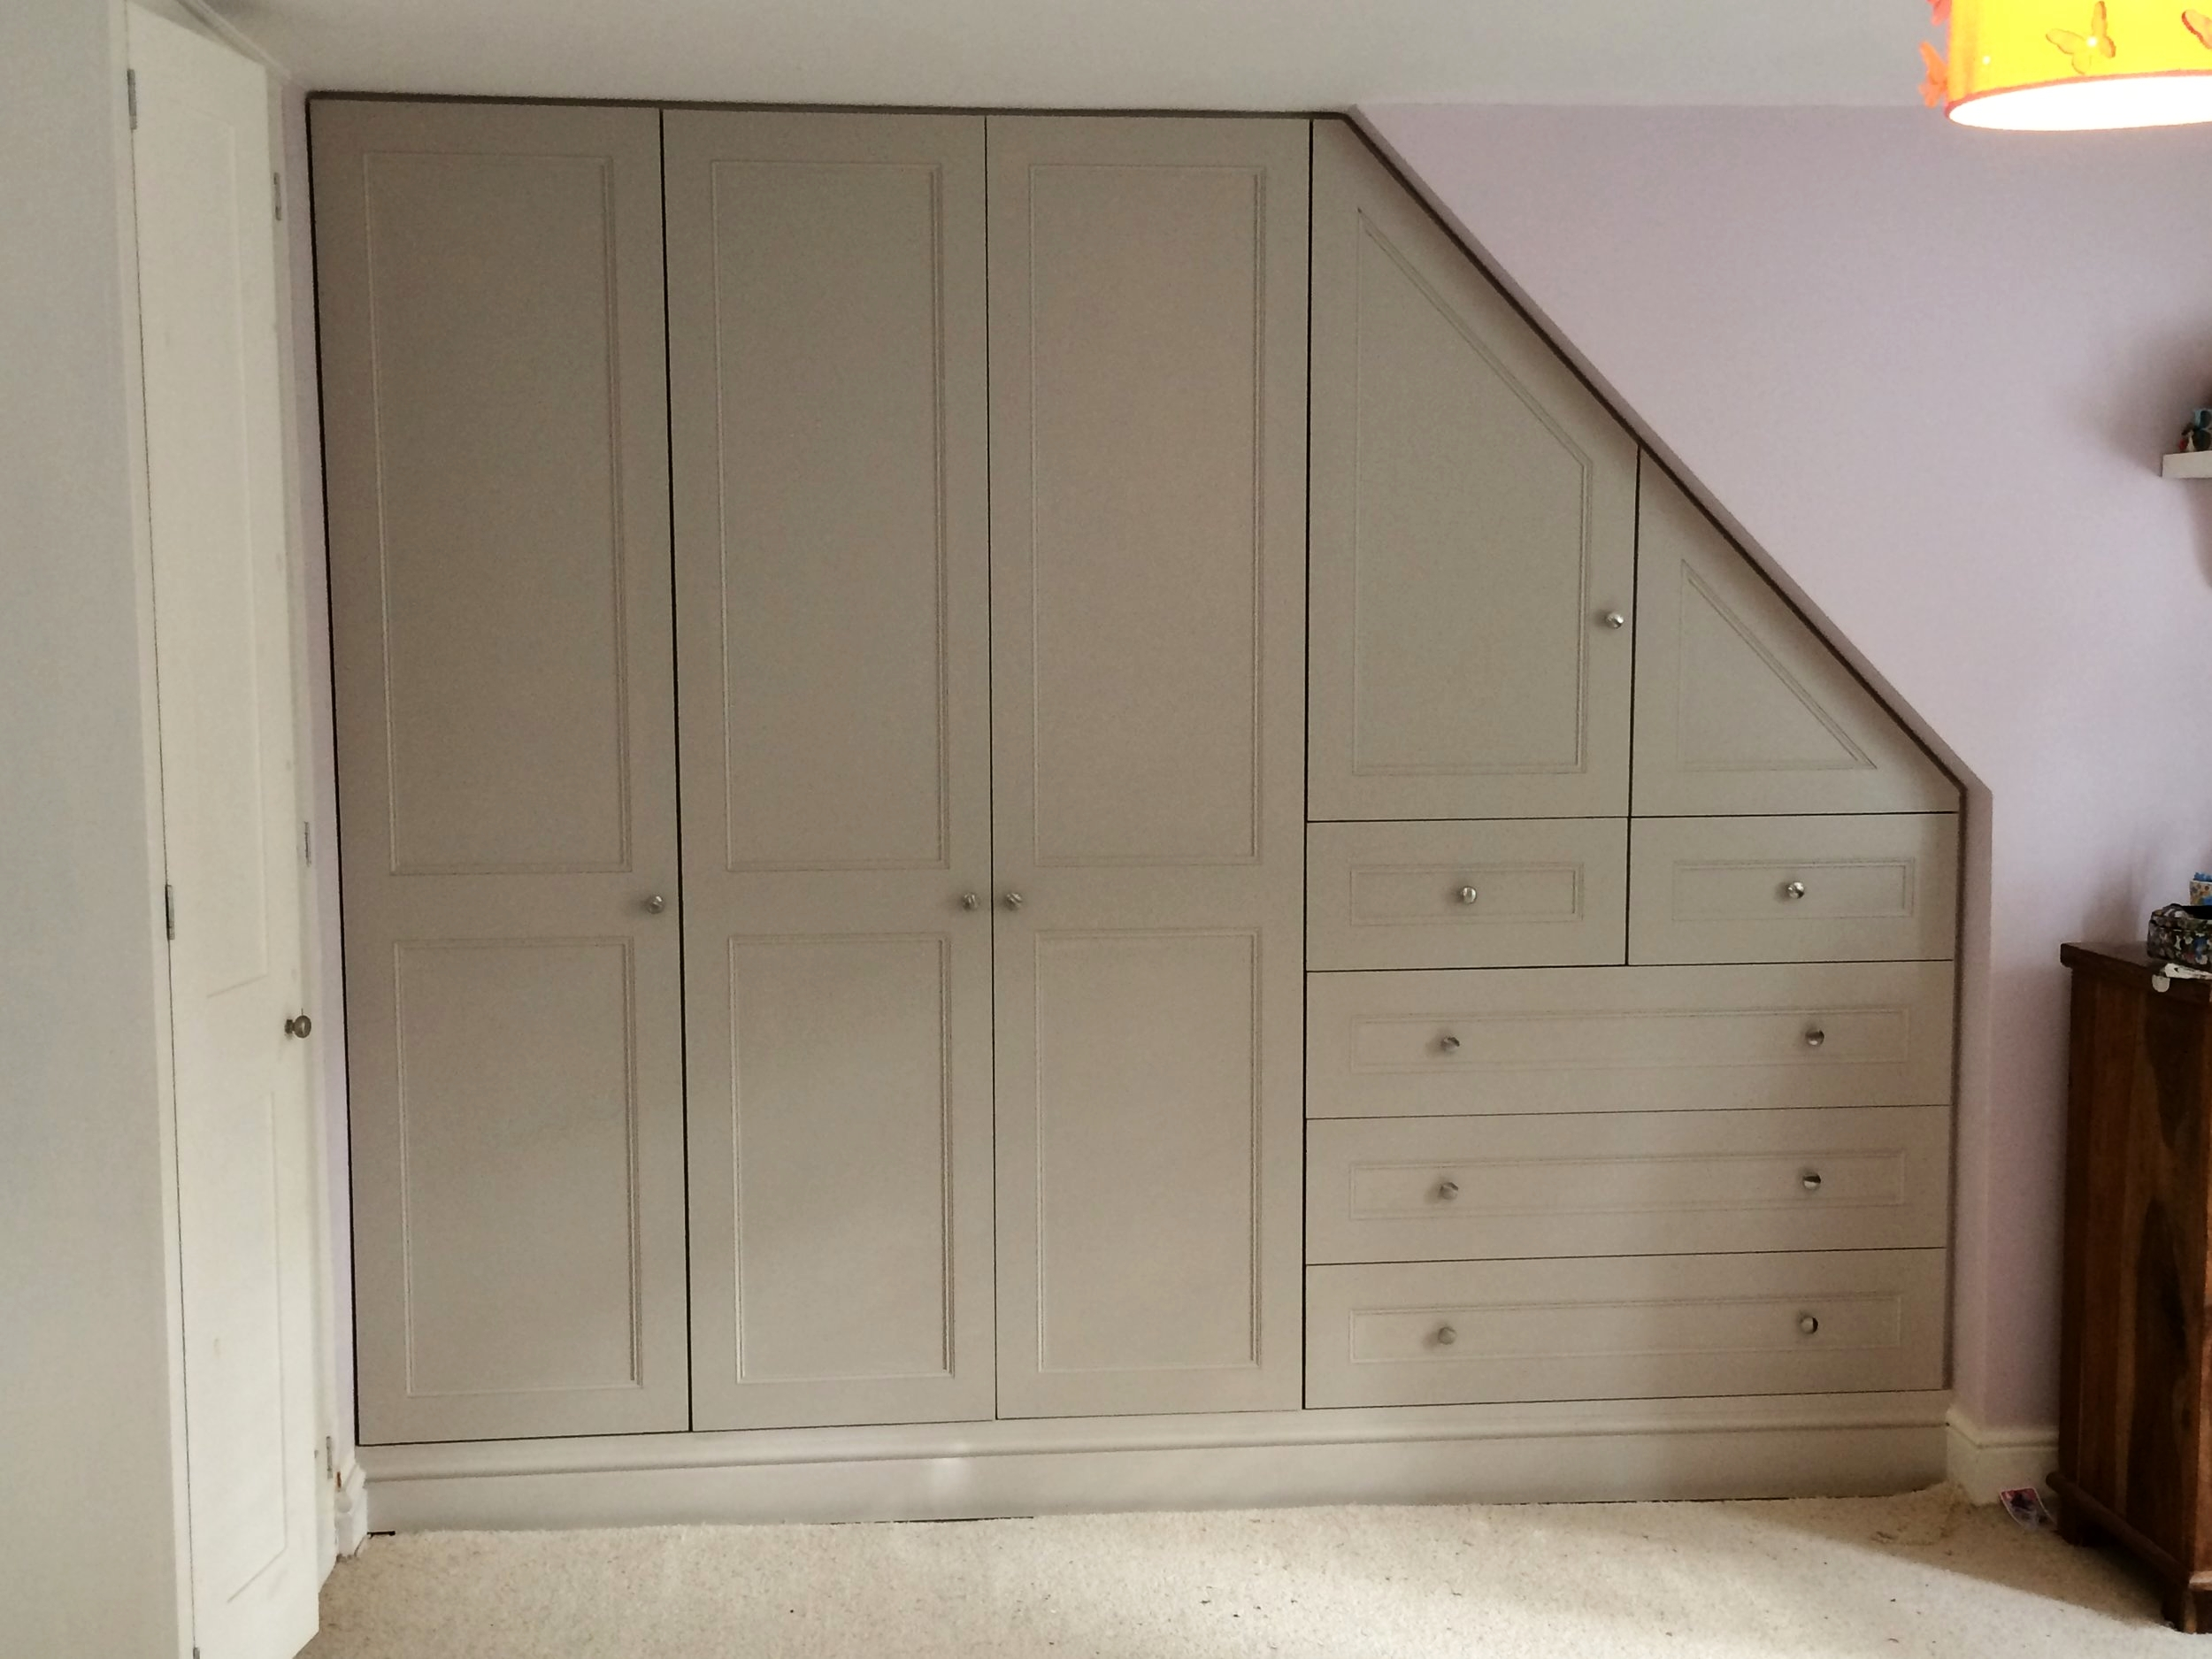 Bespoke Built In Wardrobes And Storage Solutions For Any Space Ga Carpentry Kitchens